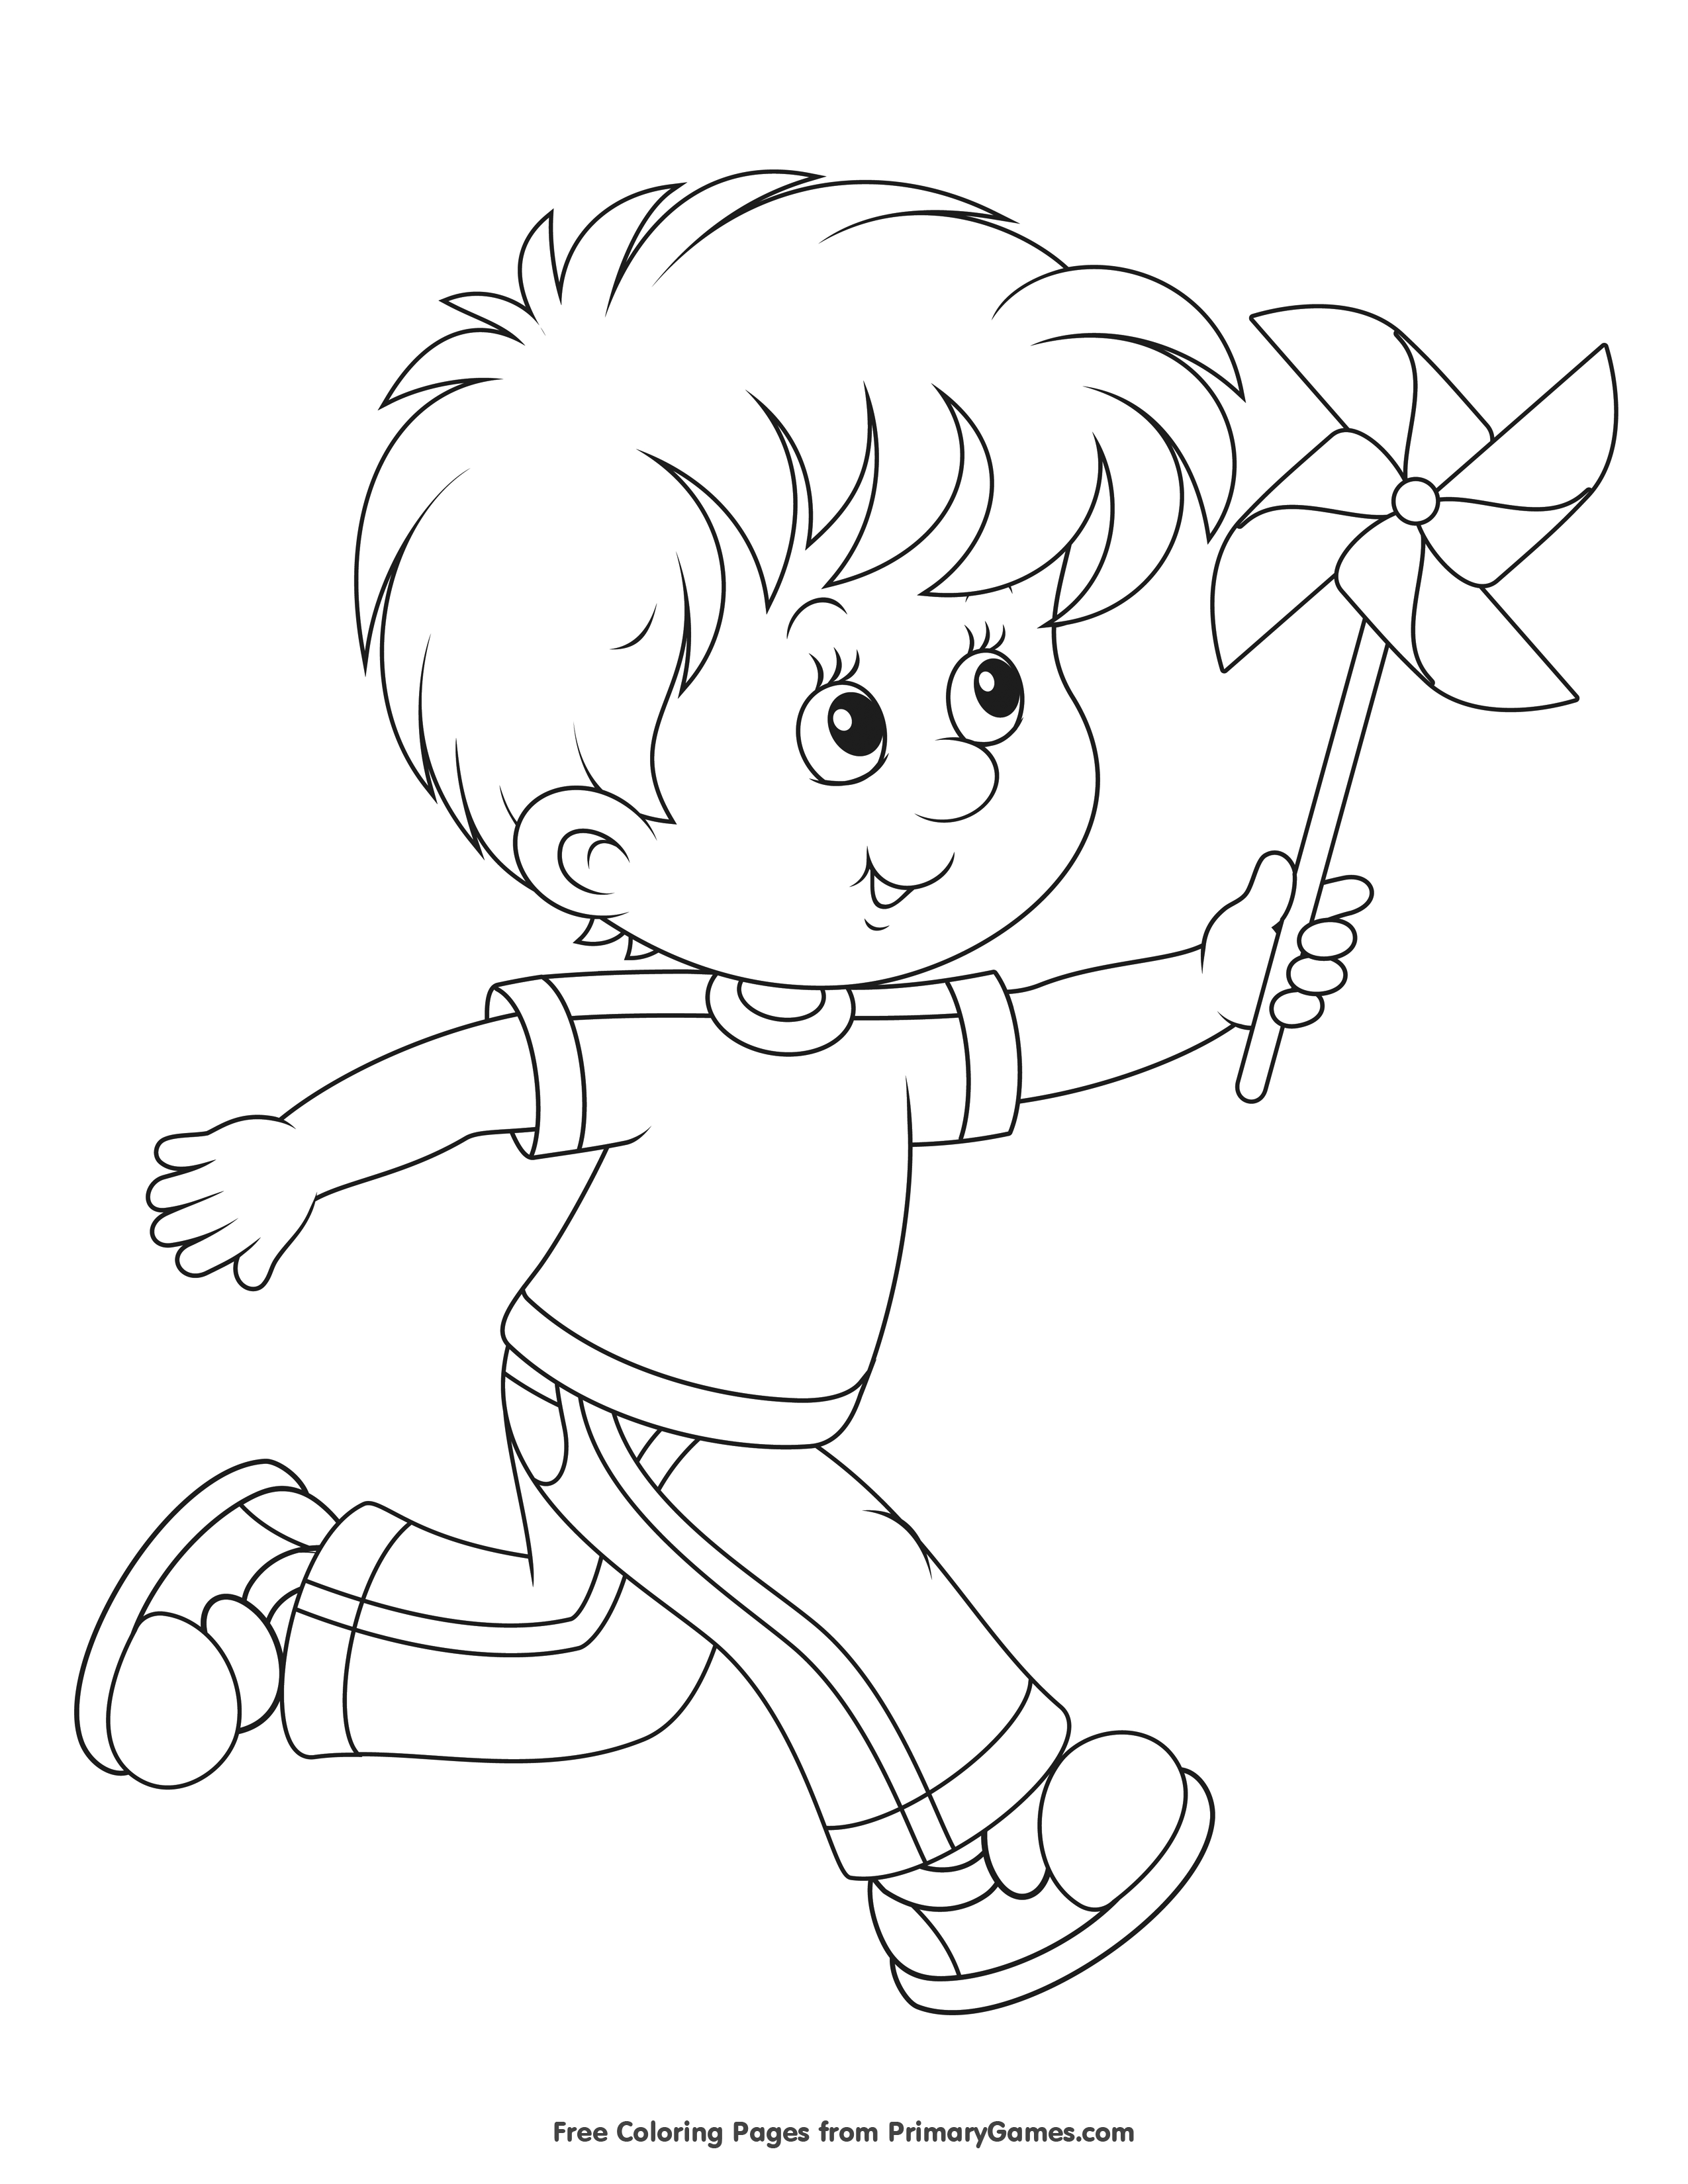 Boy playing with a pinwheel coloring page printable spring